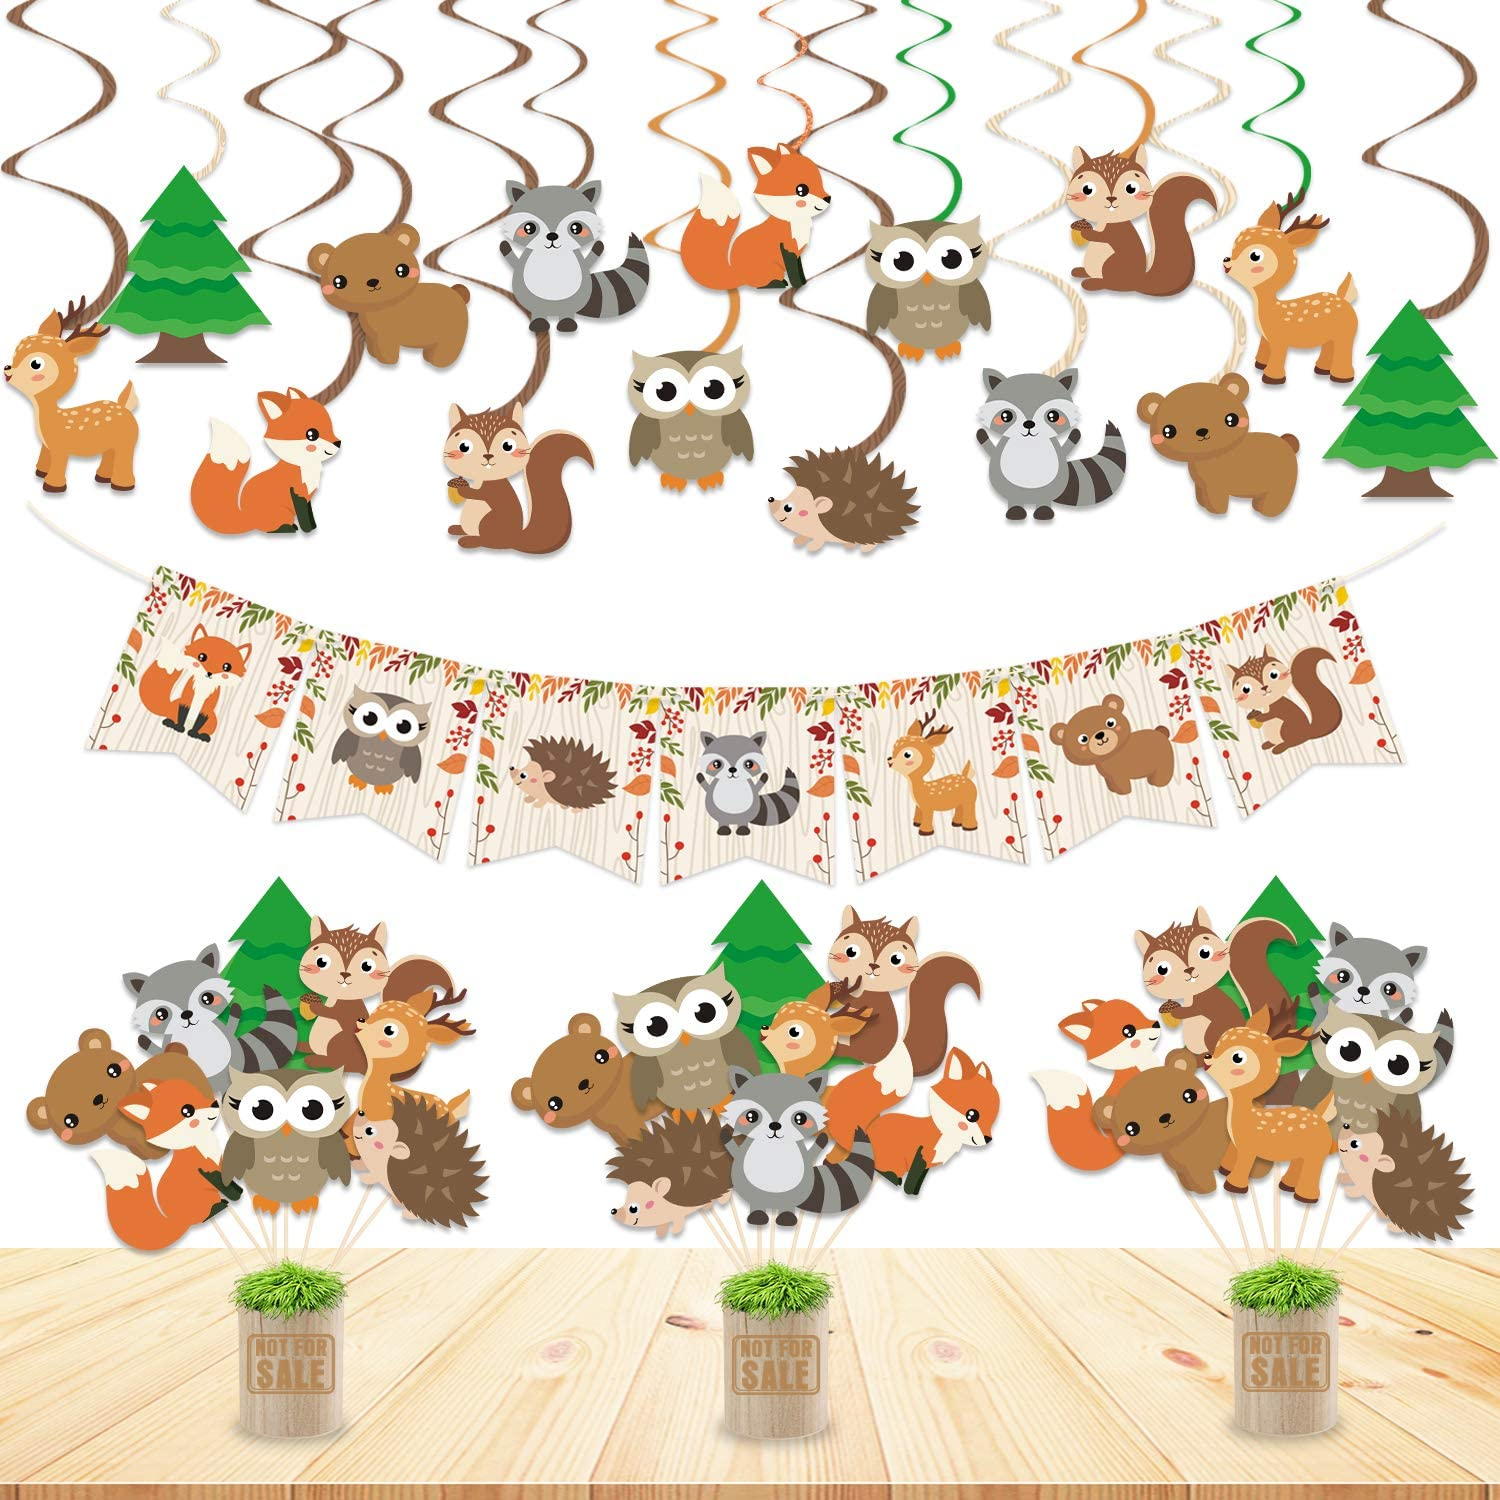 Woodland Animal Party Decorations Set Woodland Animals Bunting Banner Centerpiece Sticks Hanging Swirl Decorations for Woodland Creatures Theme Boys Girls Birthday Baby Shower Party Supplies